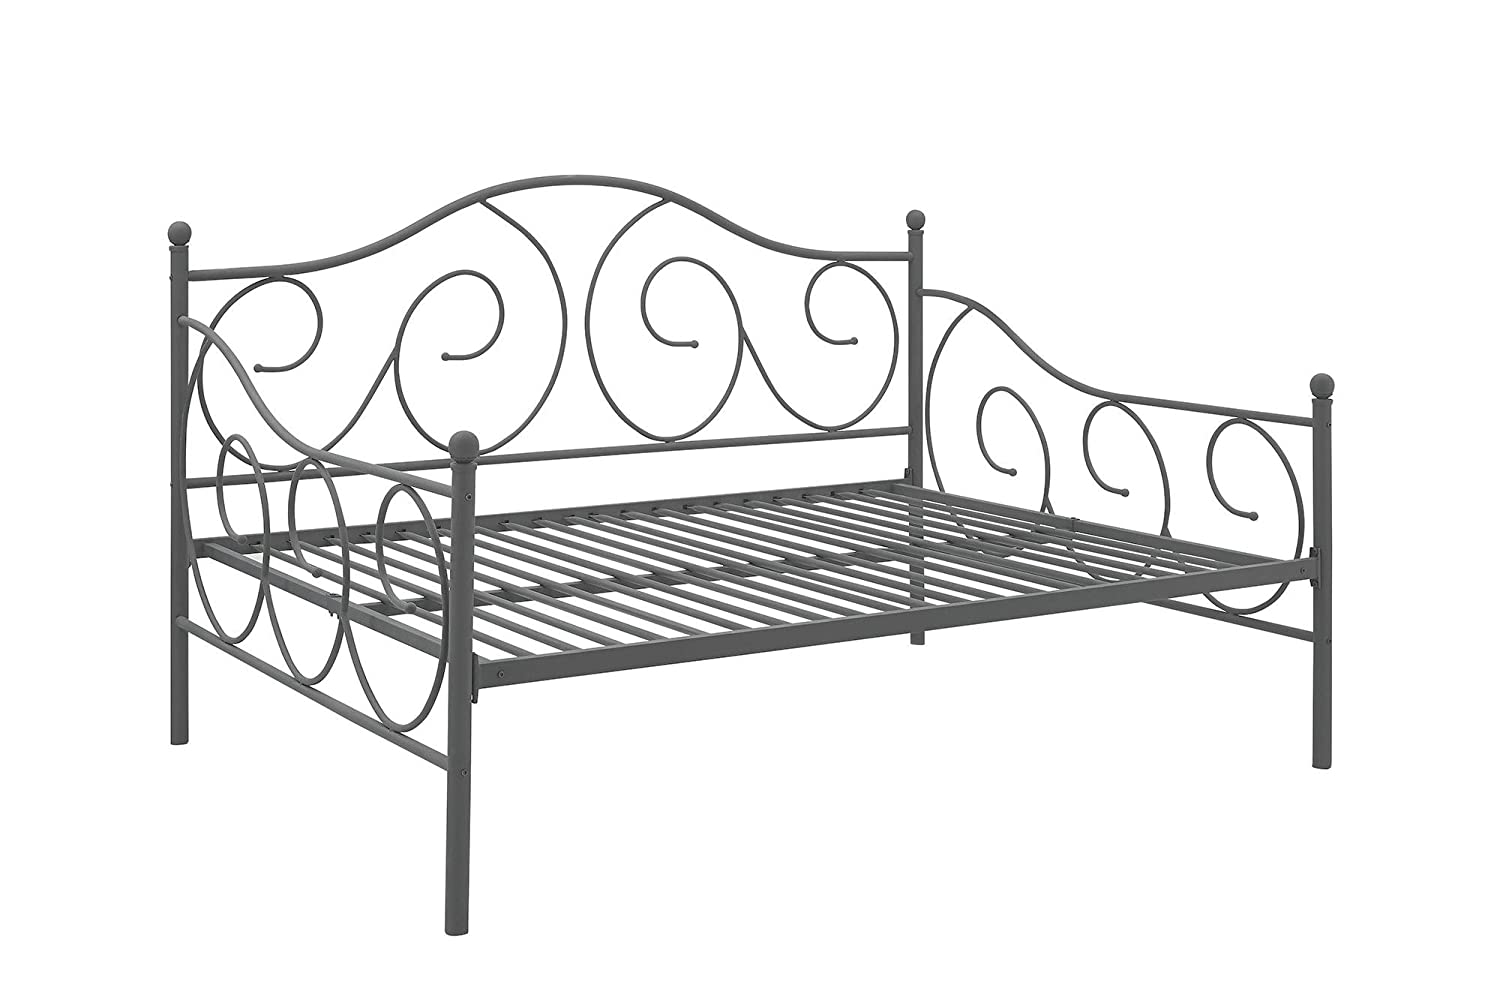 Amazon.com: DHP Victoria Full Size Metal Daybed, Pewter: Kitchen & Dining - Amazon.com: DHP Victoria Full Size Metal Daybed, Pewter: Kitchen